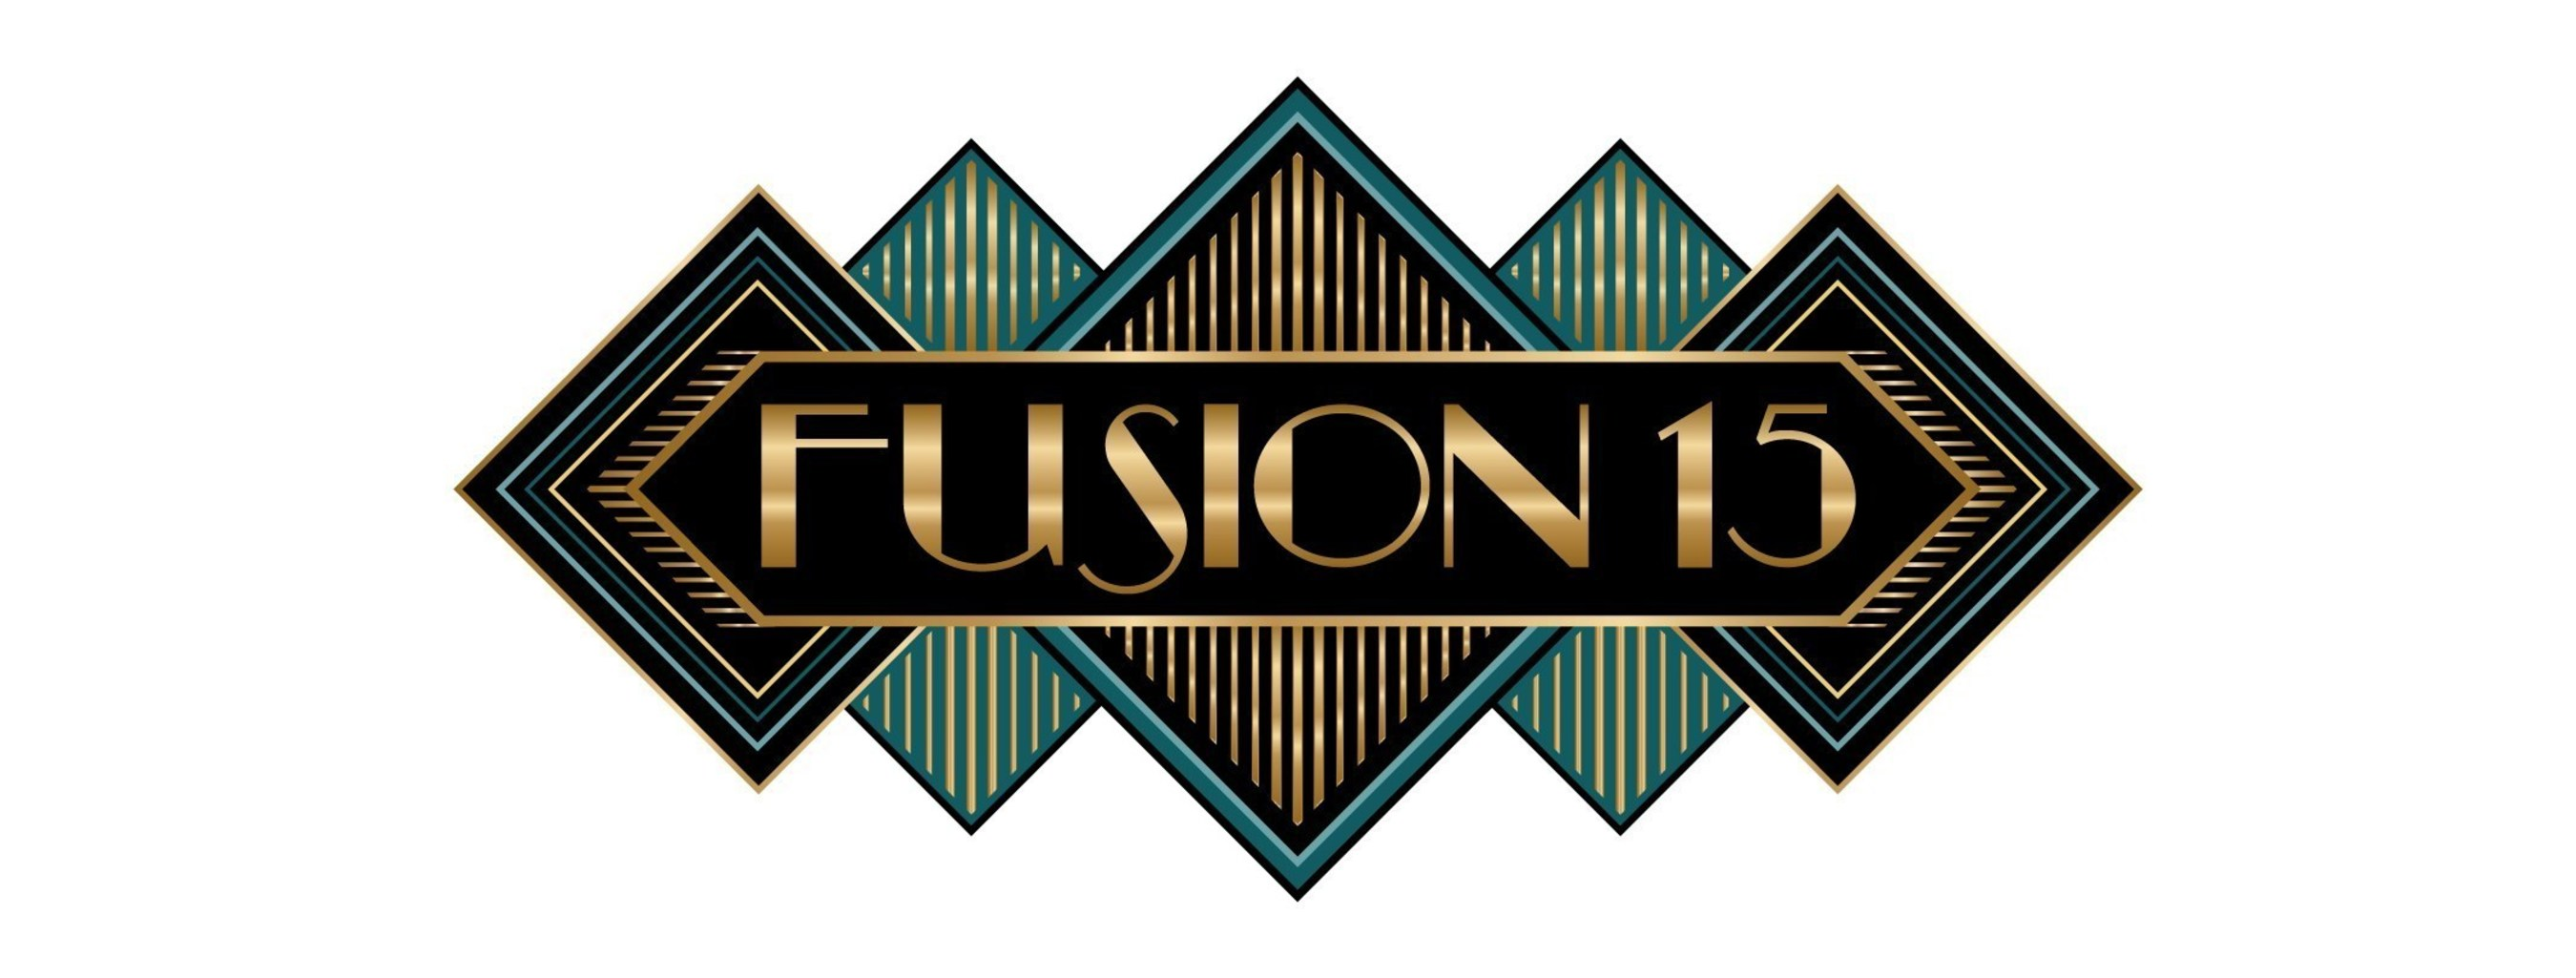 FUSION 15 will take place November 1-4, at the Hyatt Regency in New Orleans.